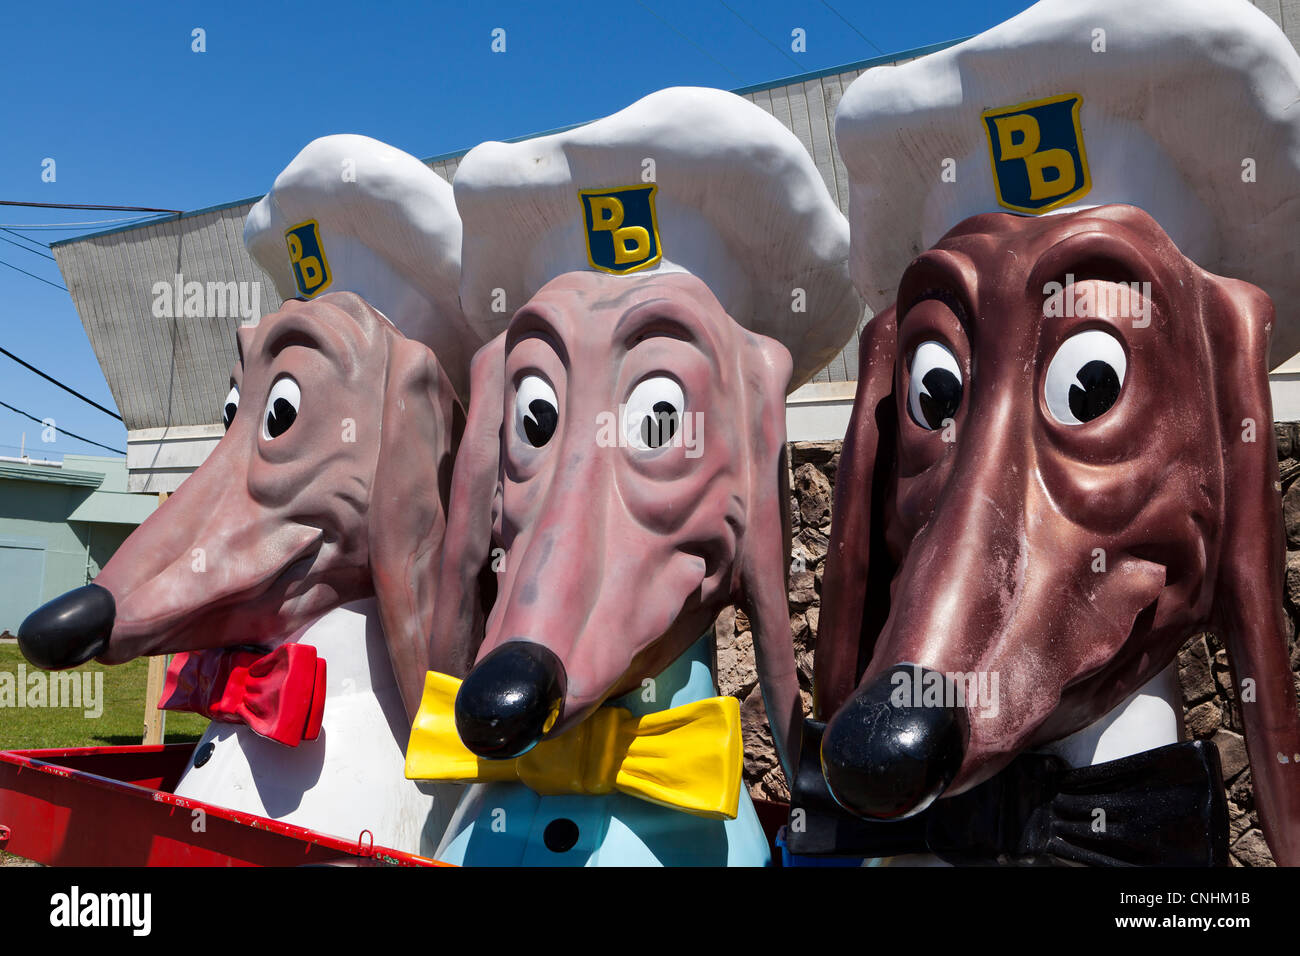 Doggie Diner heads of San Francisco - Stock Image